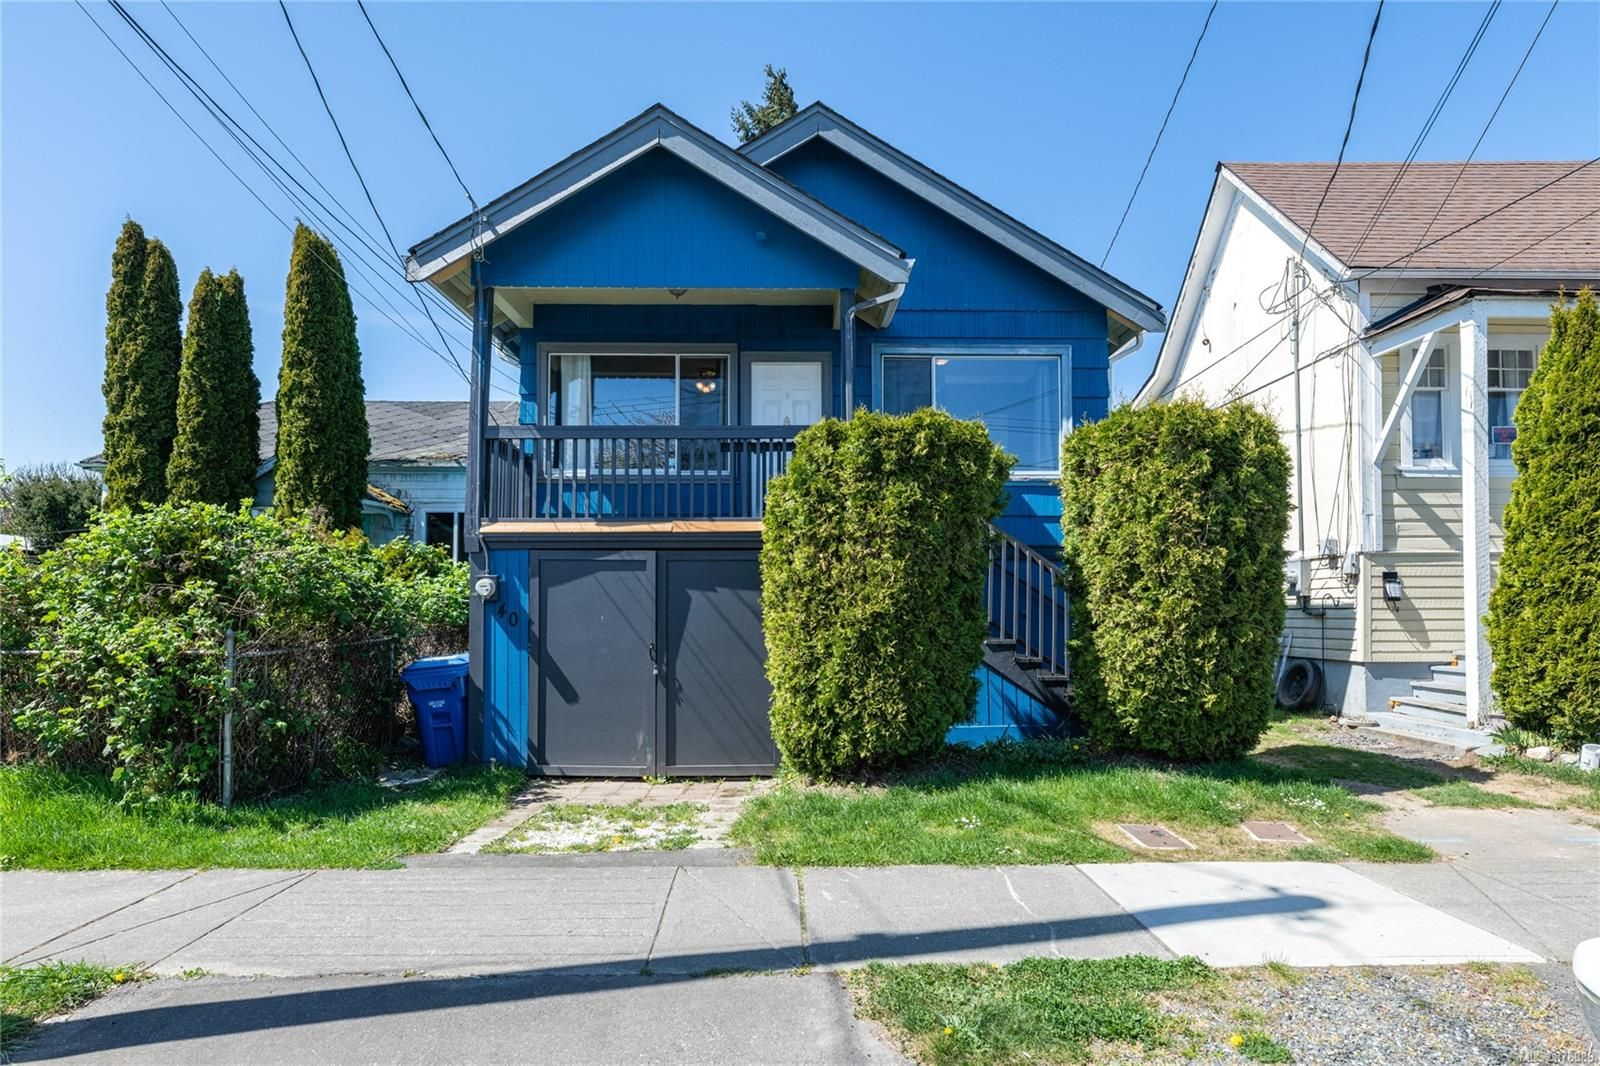 Main Photo: 40 Irwin St in : Na Old City House for sale (Nanaimo)  : MLS®# 878989